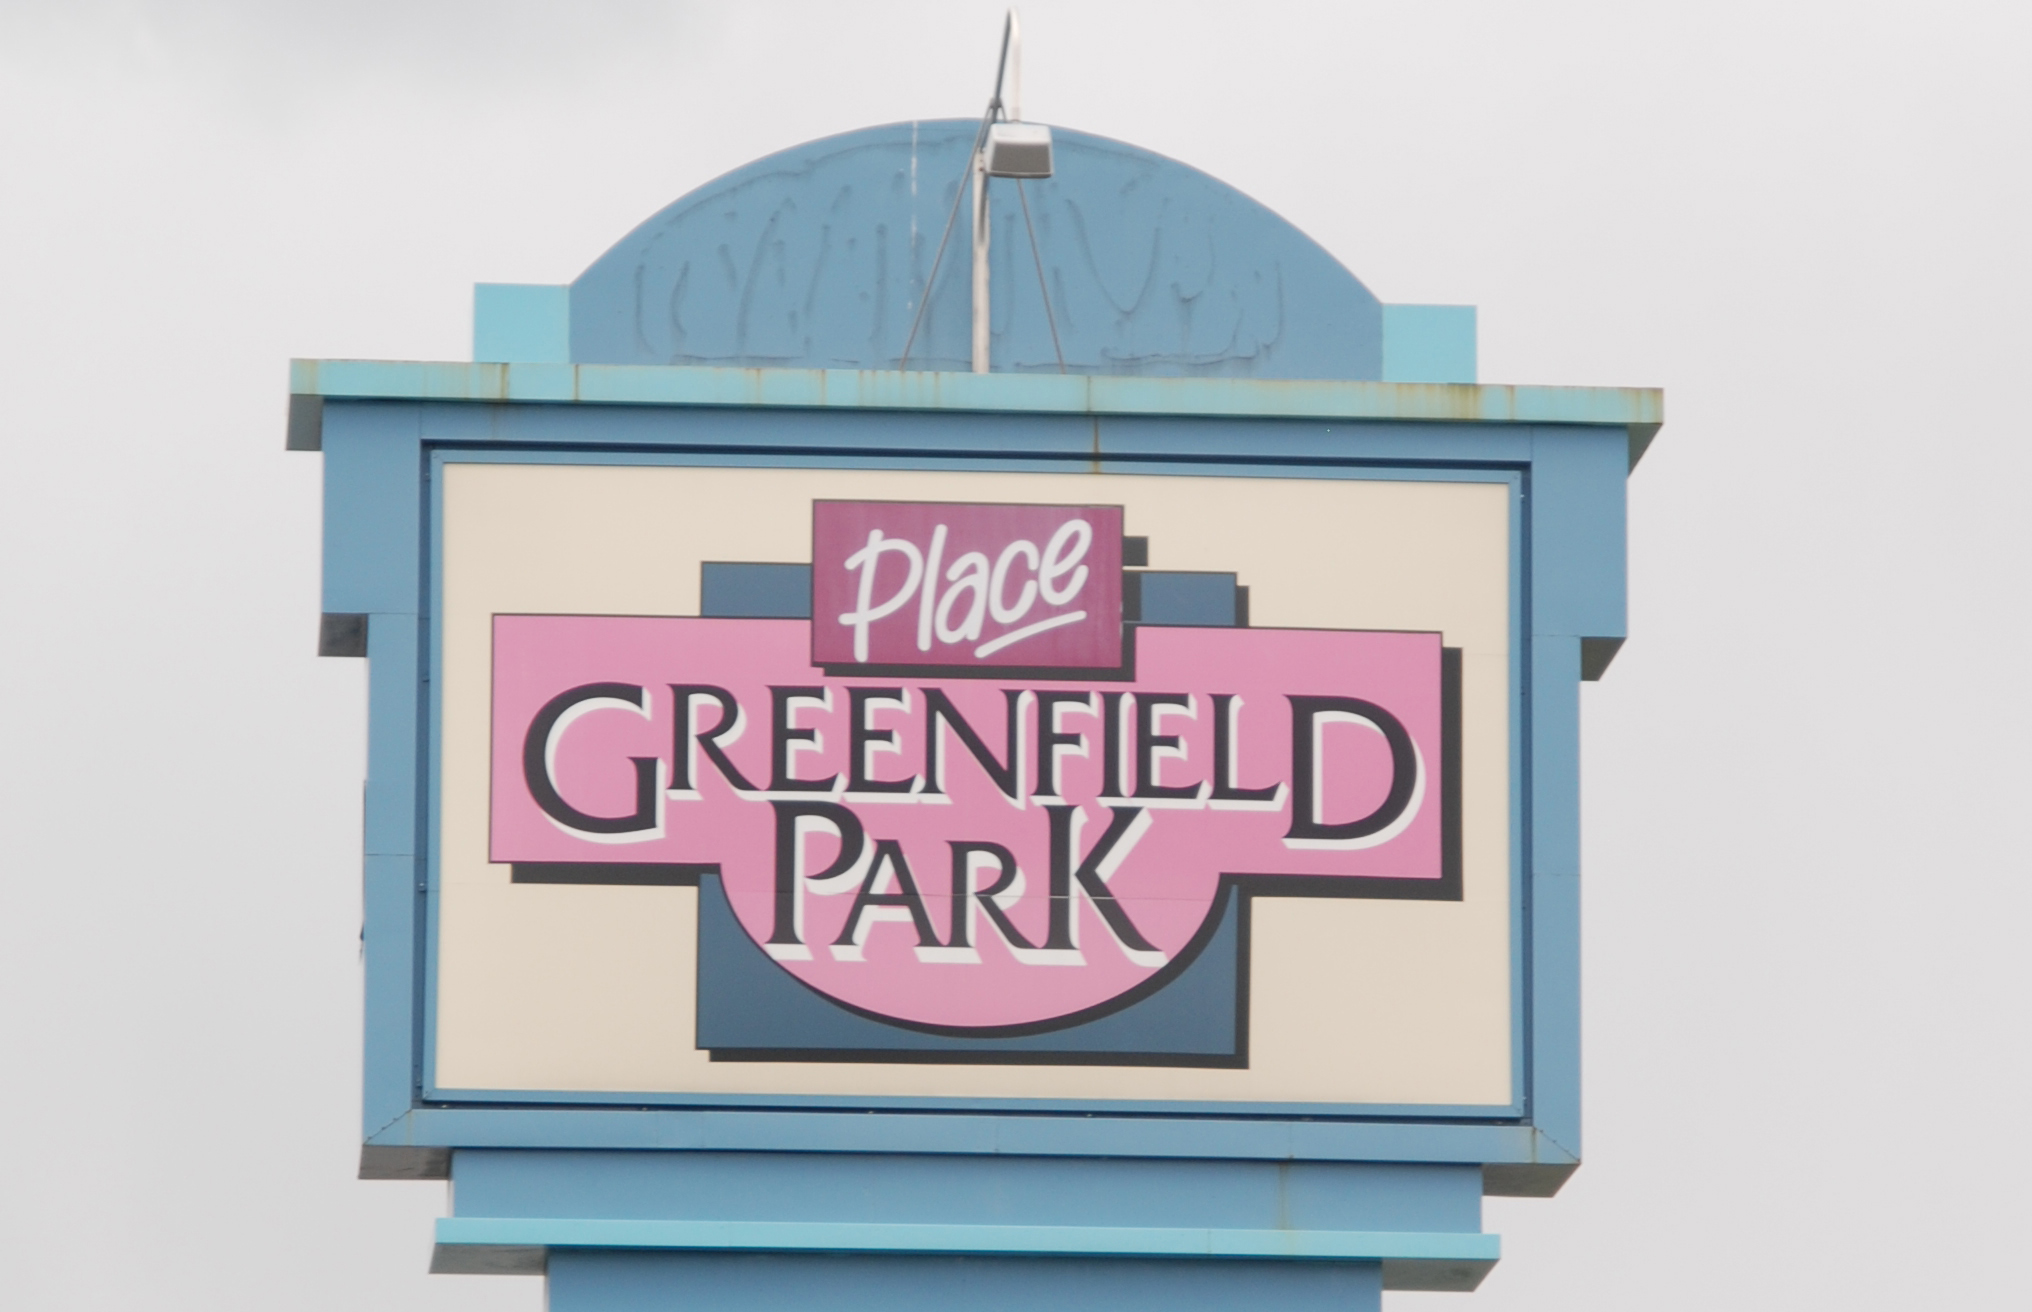 greenfield park chat sites Site powered by teamsidelinecom privacy | admin sign in sign in  toggle navigation menu home game schedules leagues  current upcoming registration info.